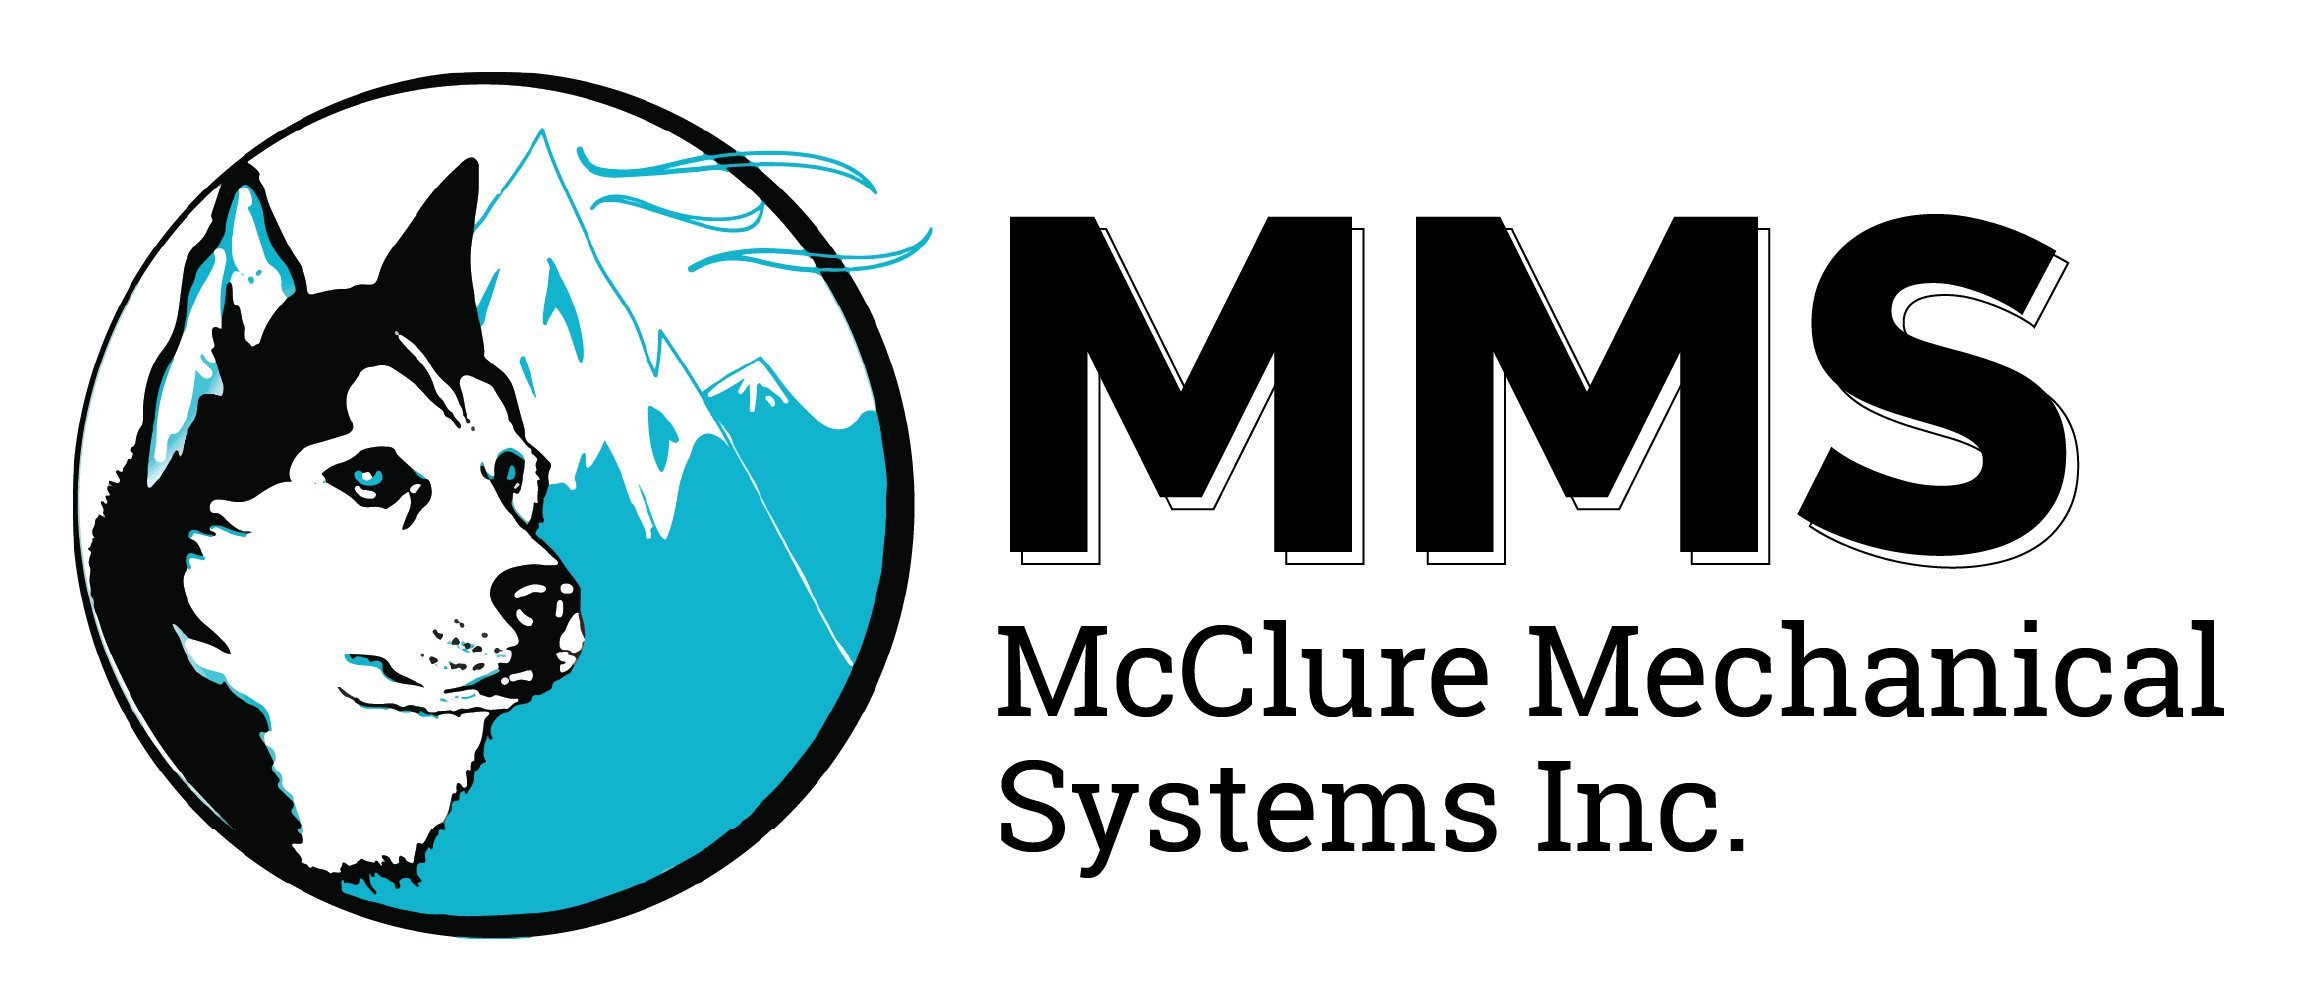 McClure Mechanical Systems, Inc